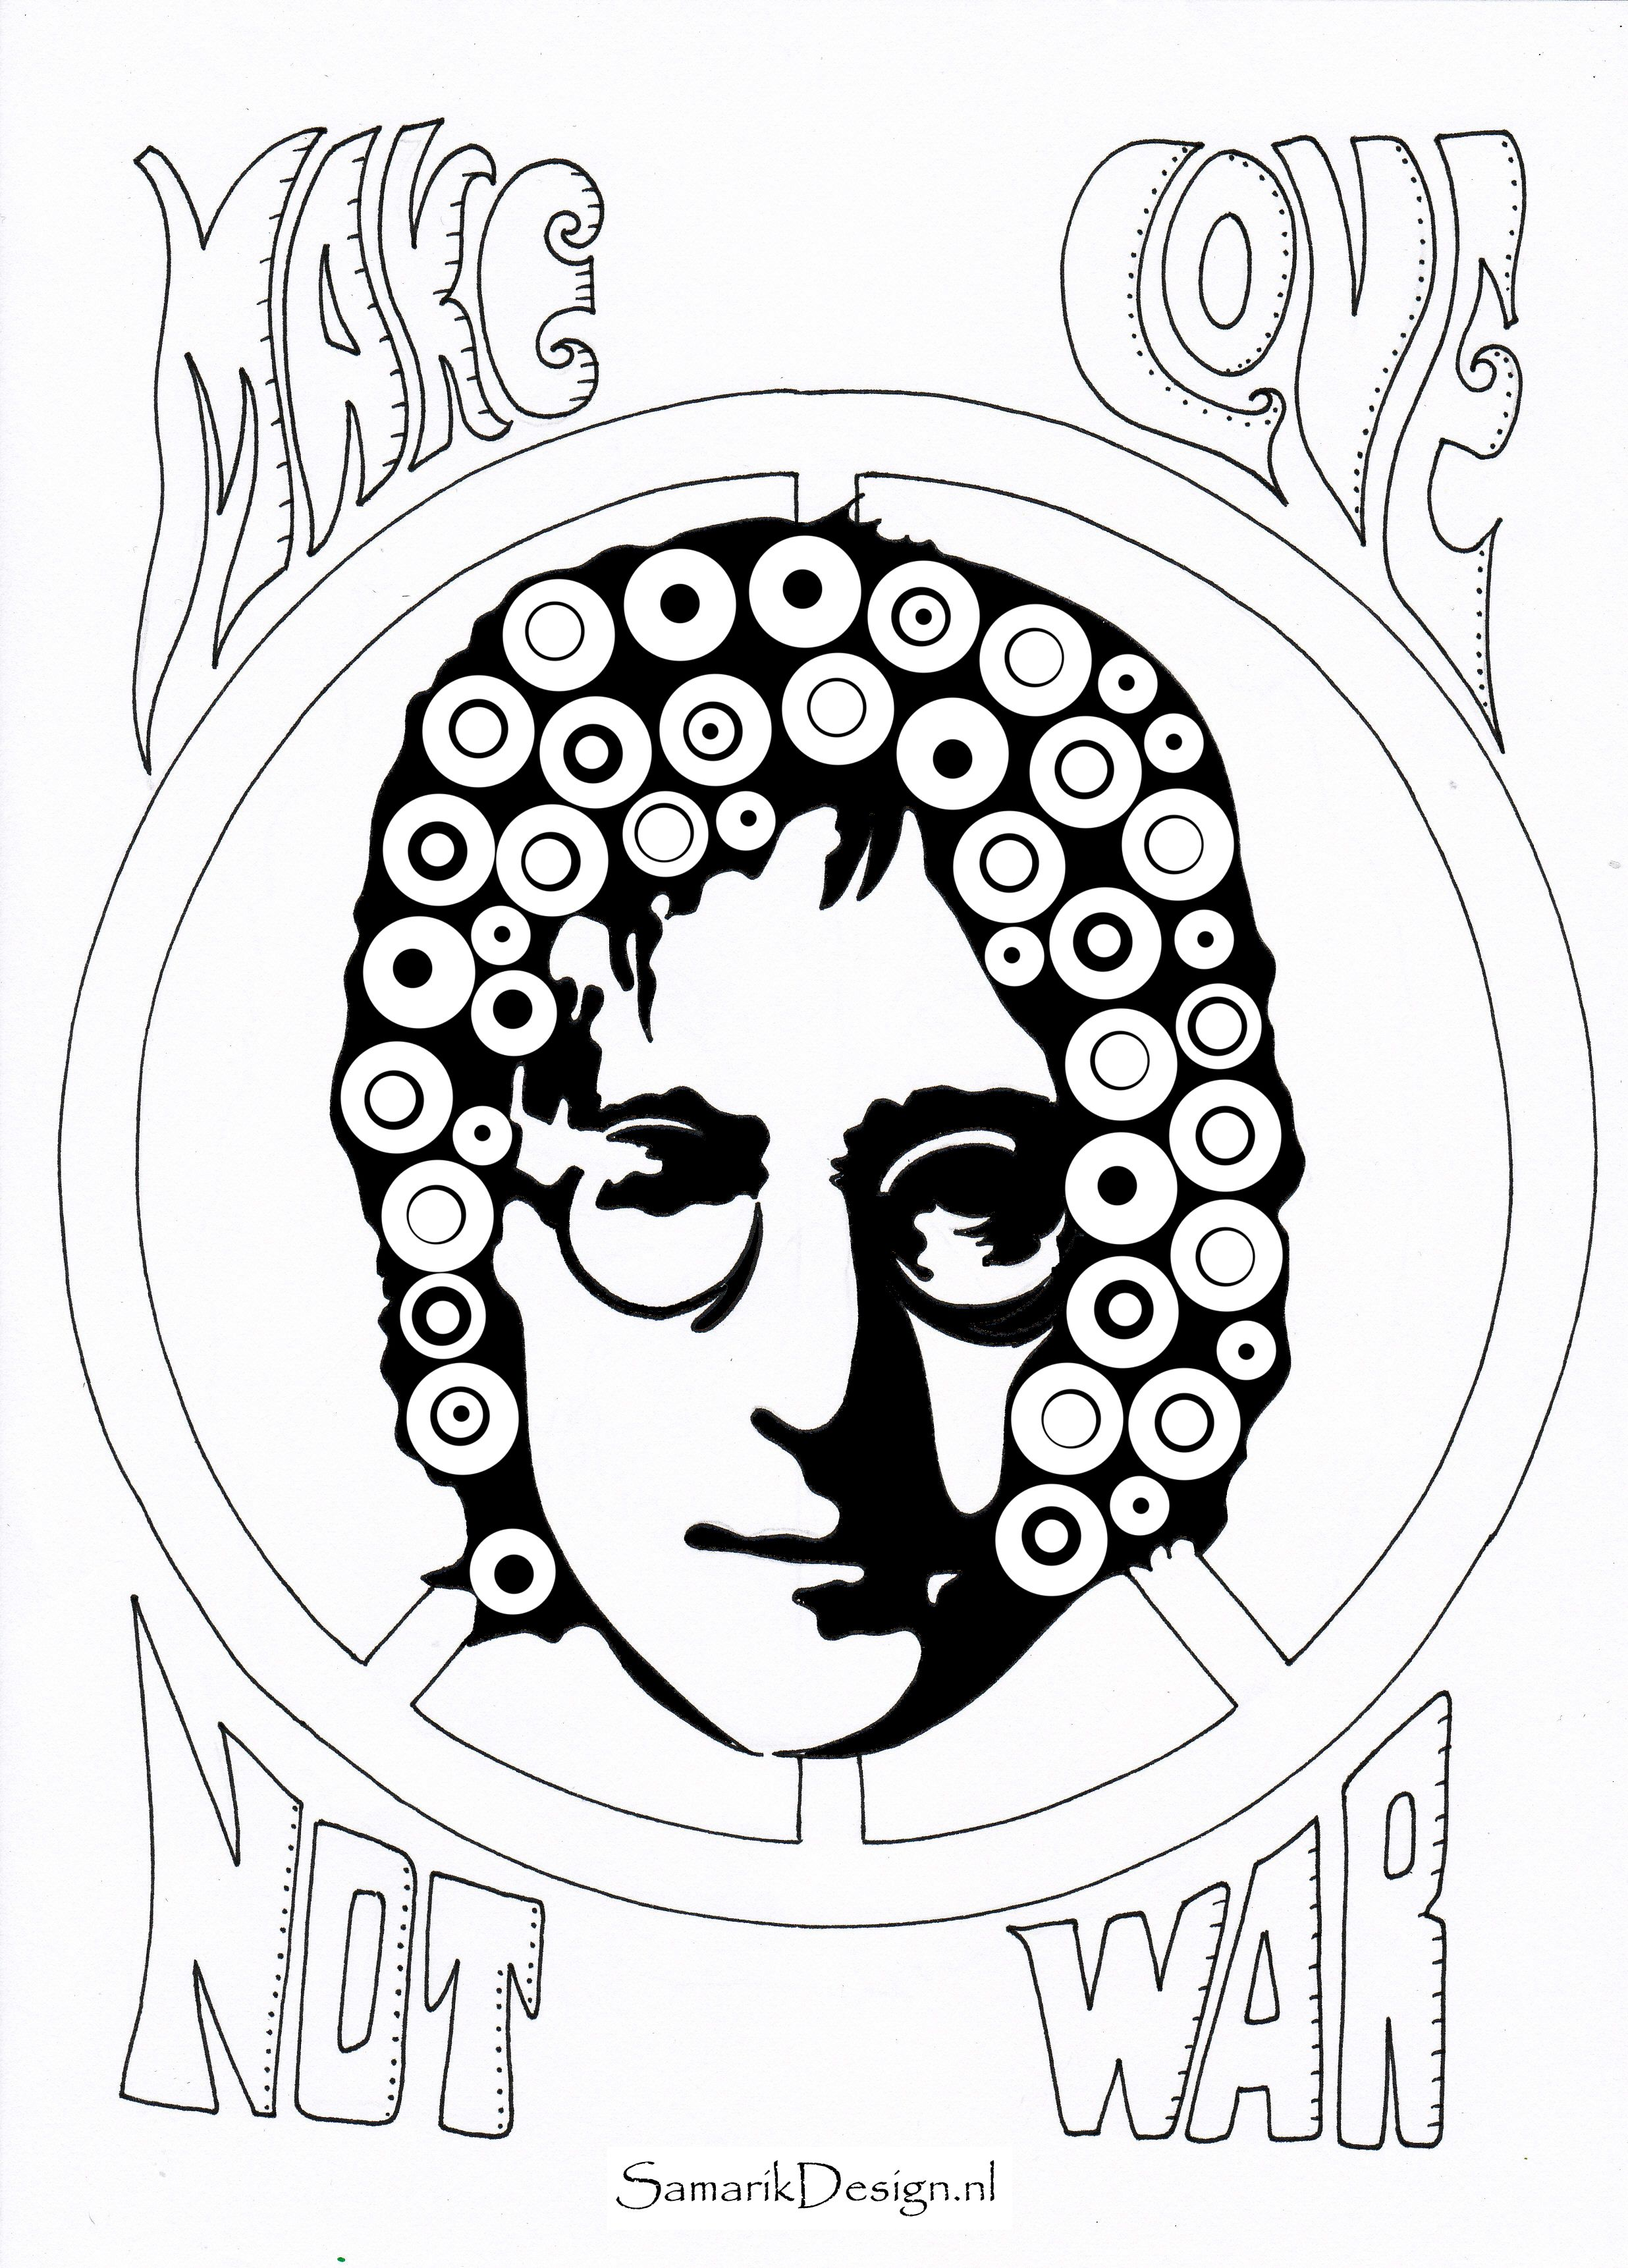 John lennon famous people coloring pages to print adult coloring pages john lennon